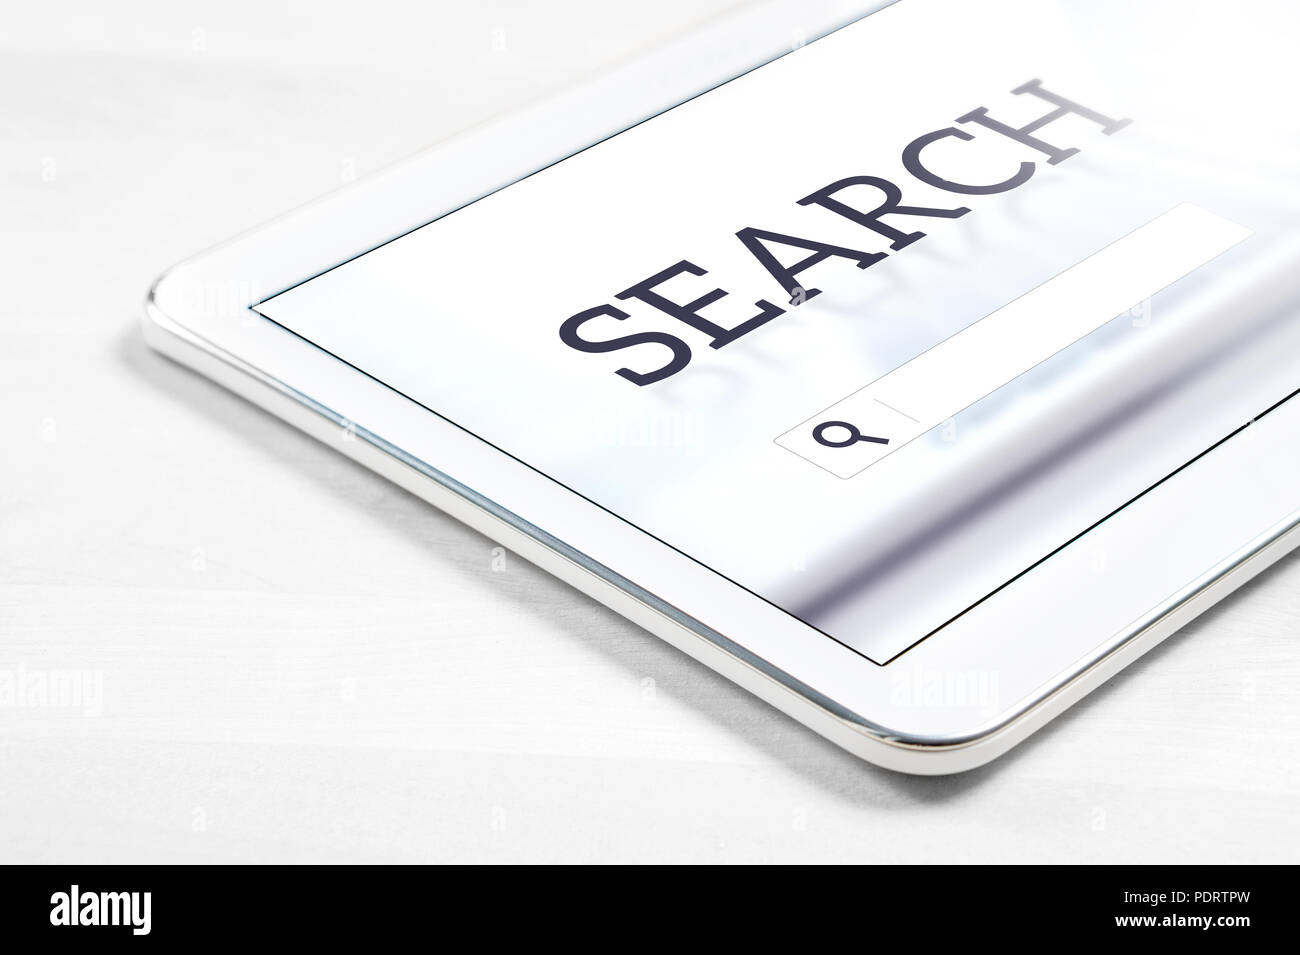 Search engine app on tablet screen. Application to find website or service with smart mobile device. - Stock Image